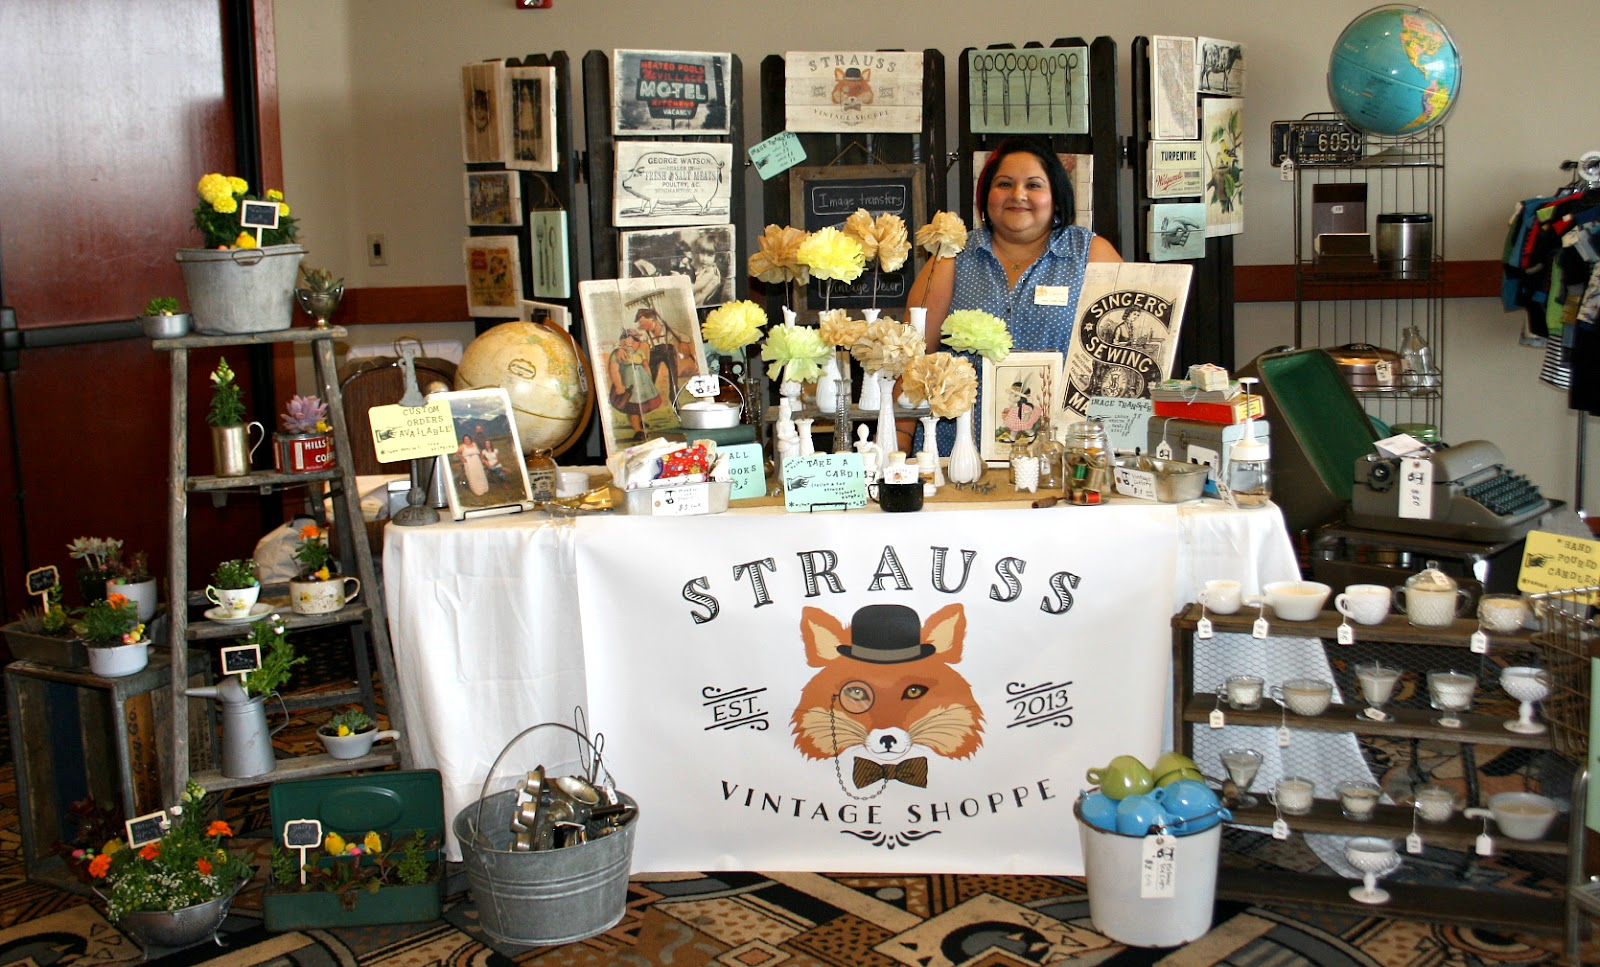 Strauss Vintage Shoppe feature & GIVEAWAY on Shop Small Saturday Showcase at Diane's Vintage Zest!